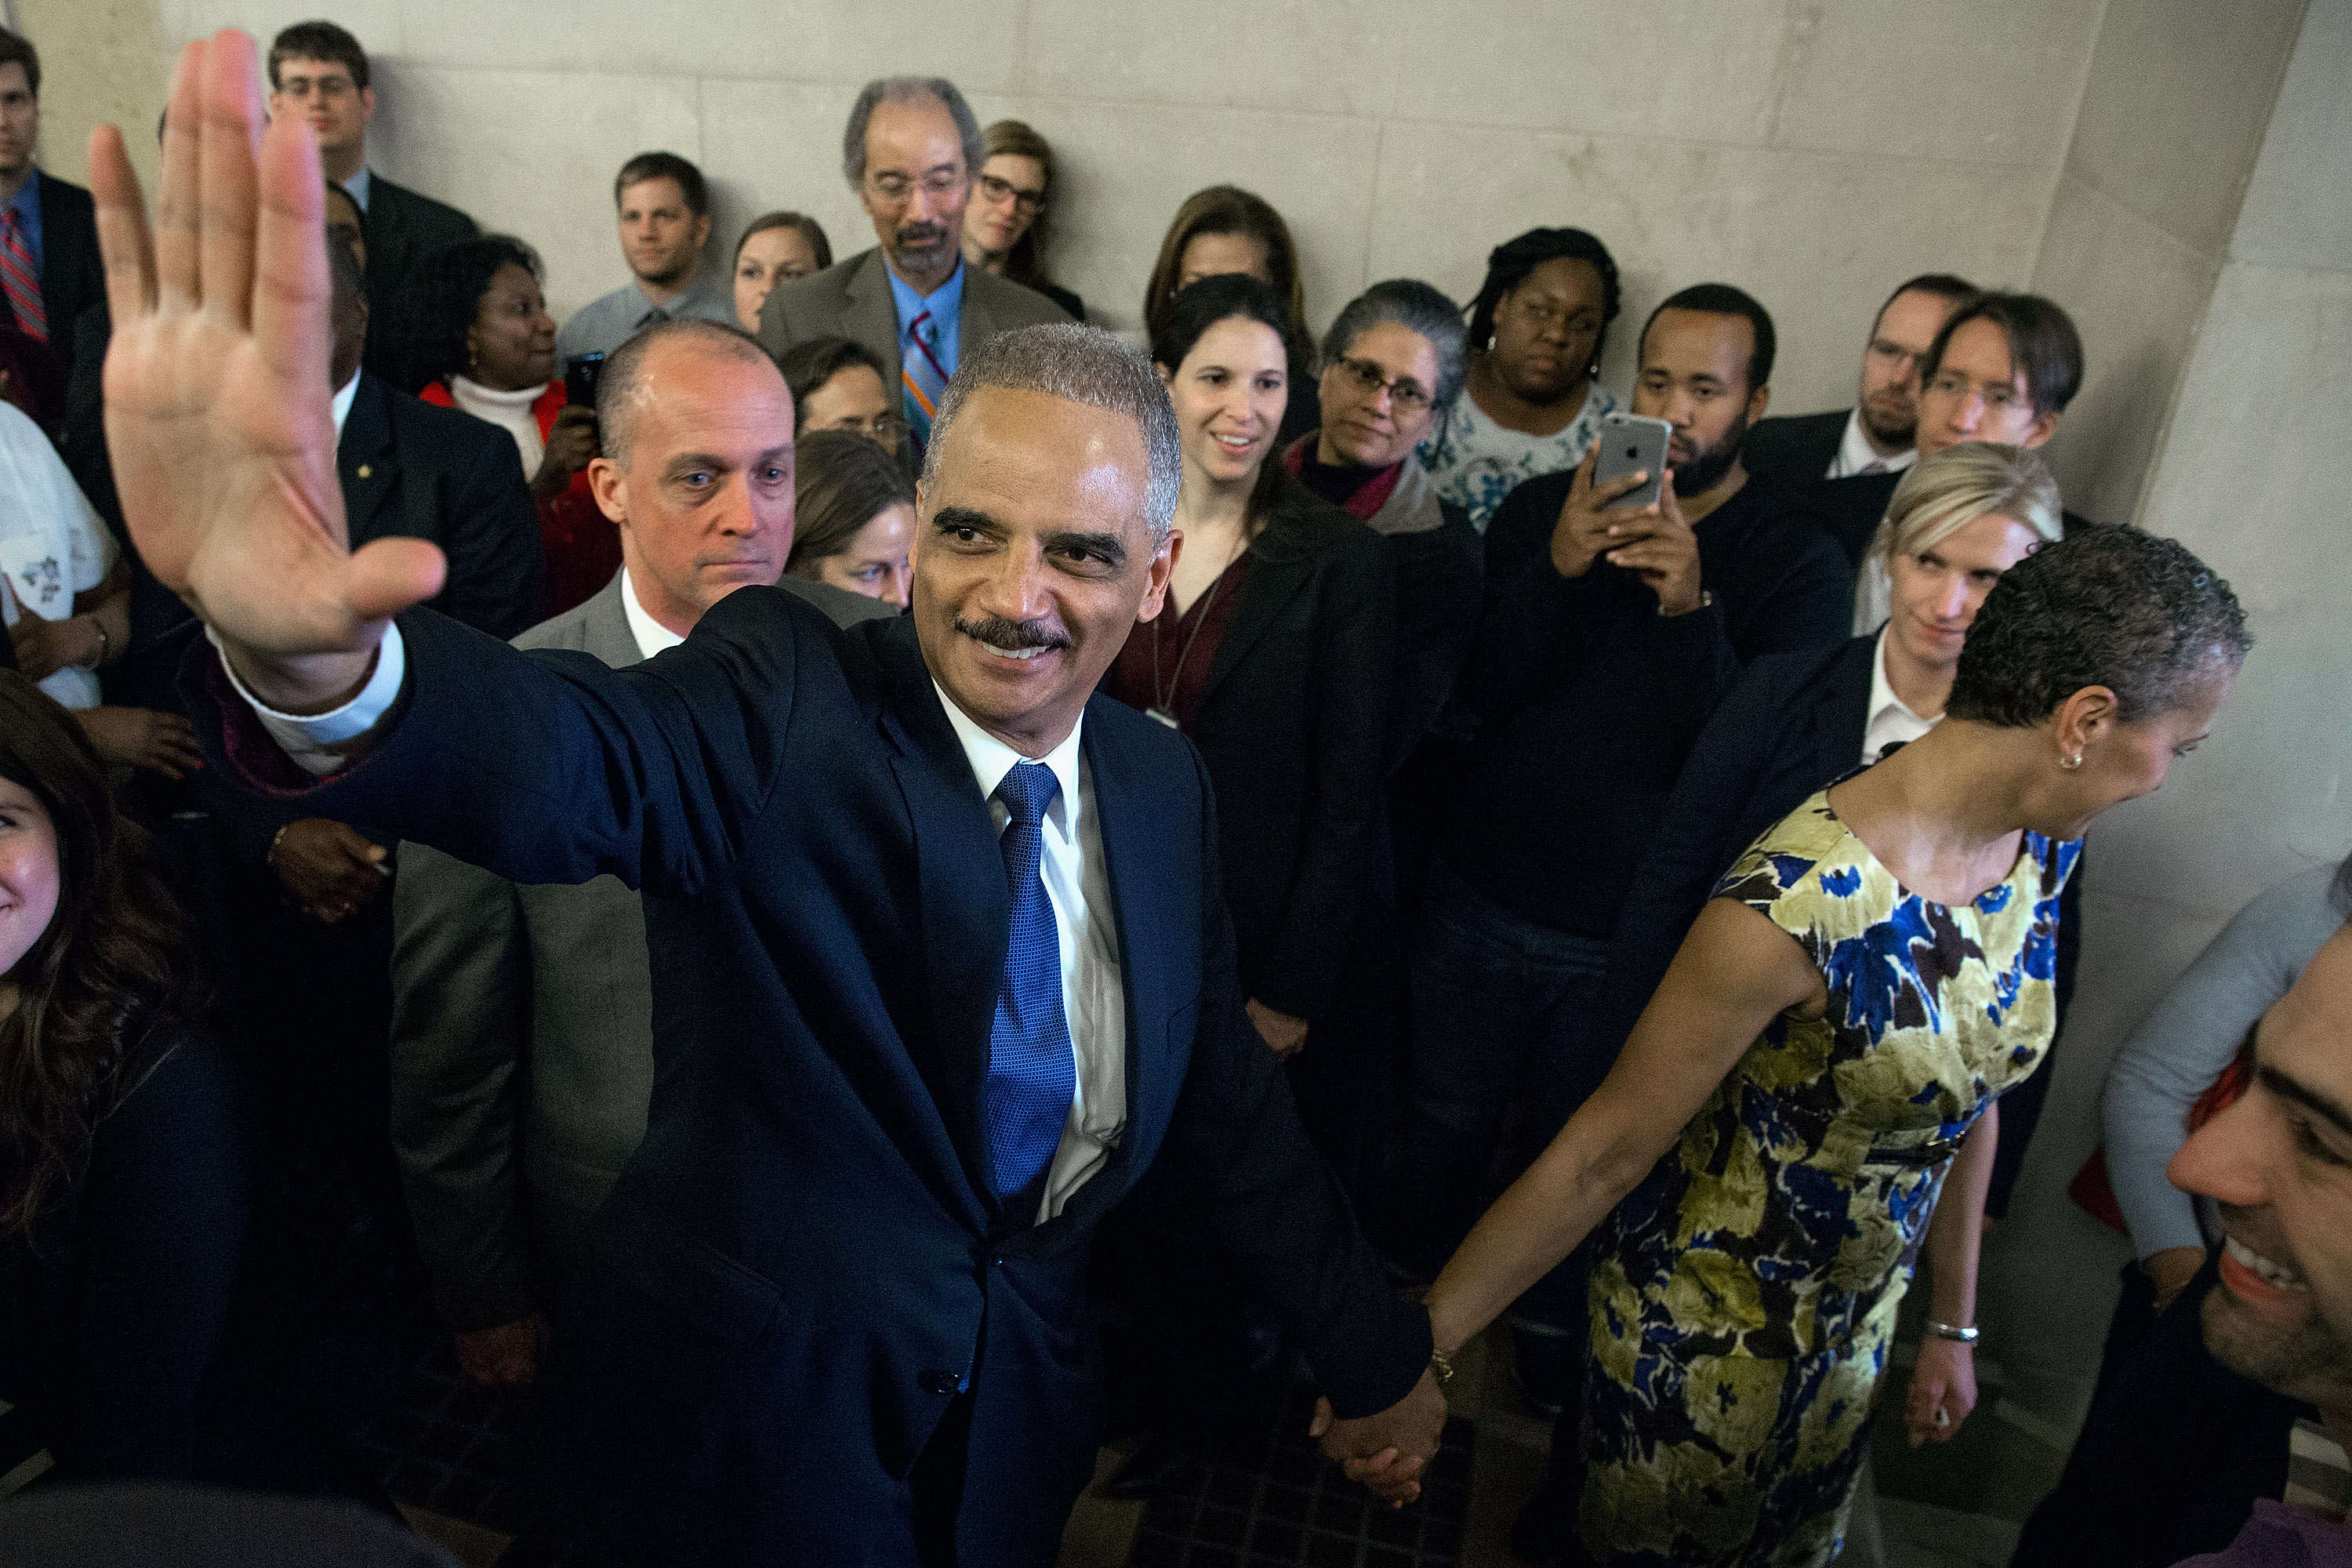 U.S. Attorney General Eric Holder says goodbye to Justice Department employees as he leaves the Robert F. Kennedy building with his wife April 24, 2015 in Washington, DC.